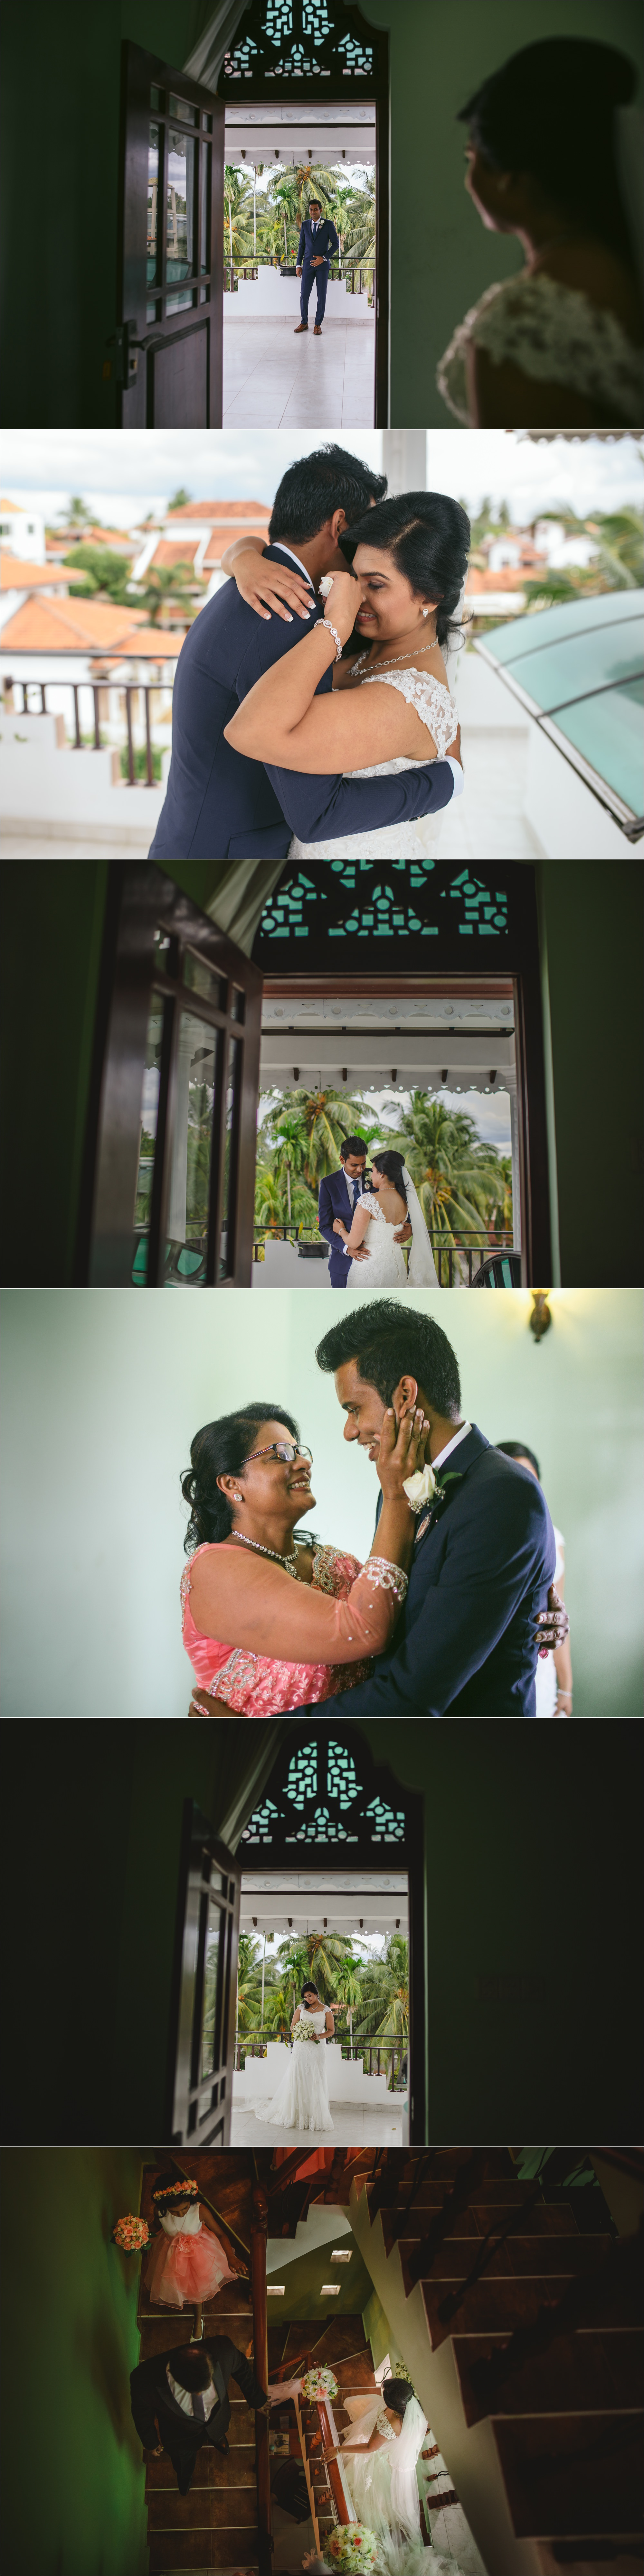 negombo wedding photographer